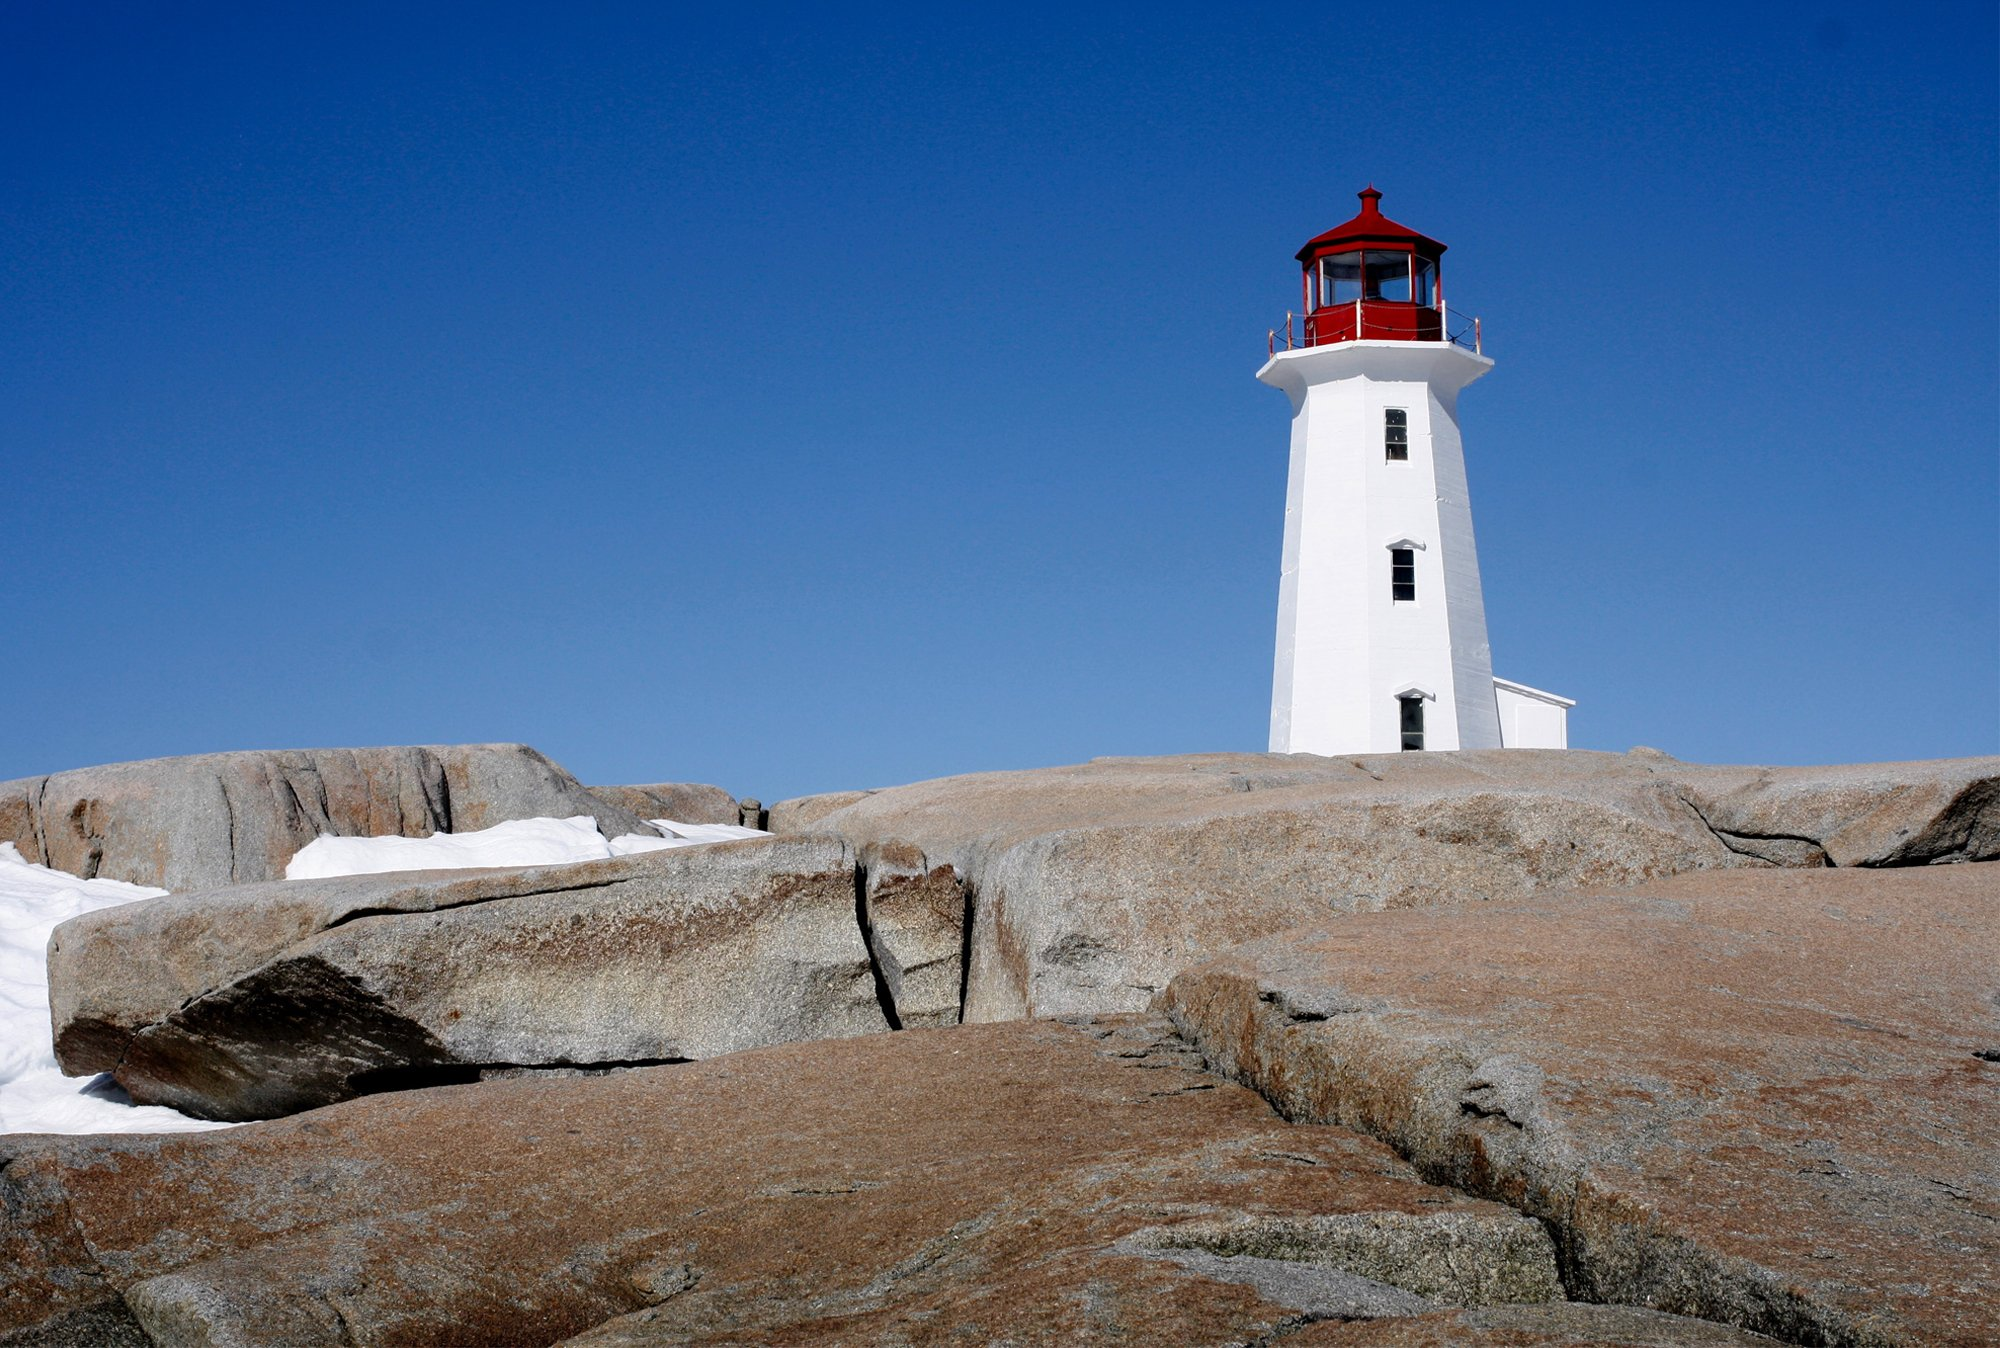 Peggy's Cove near Halifax, Nova Scotia